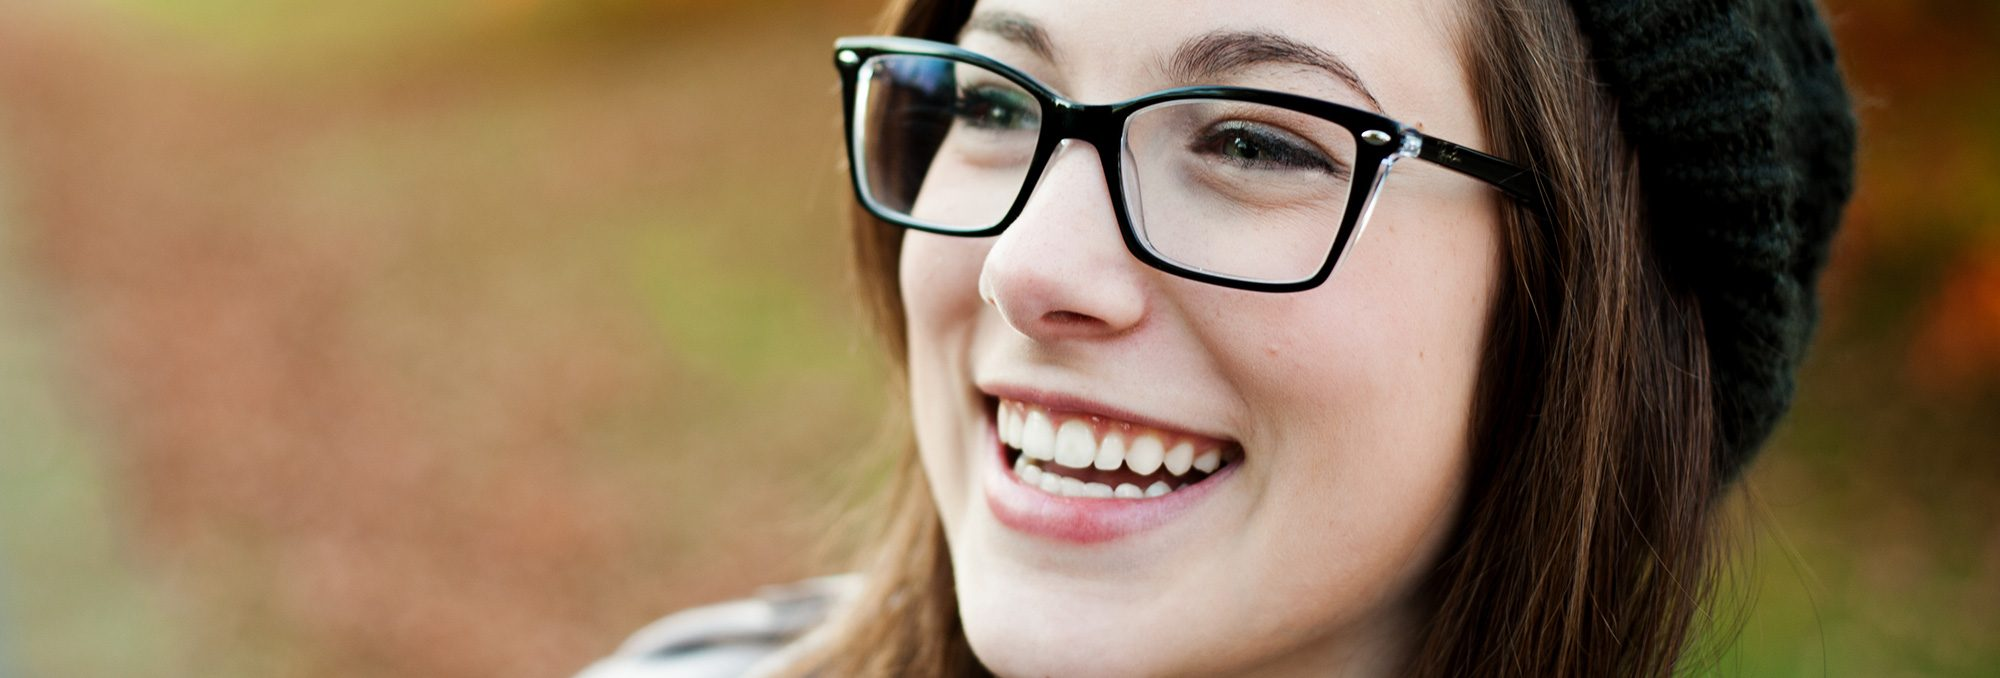 Young woman with beanie and glasses smiling